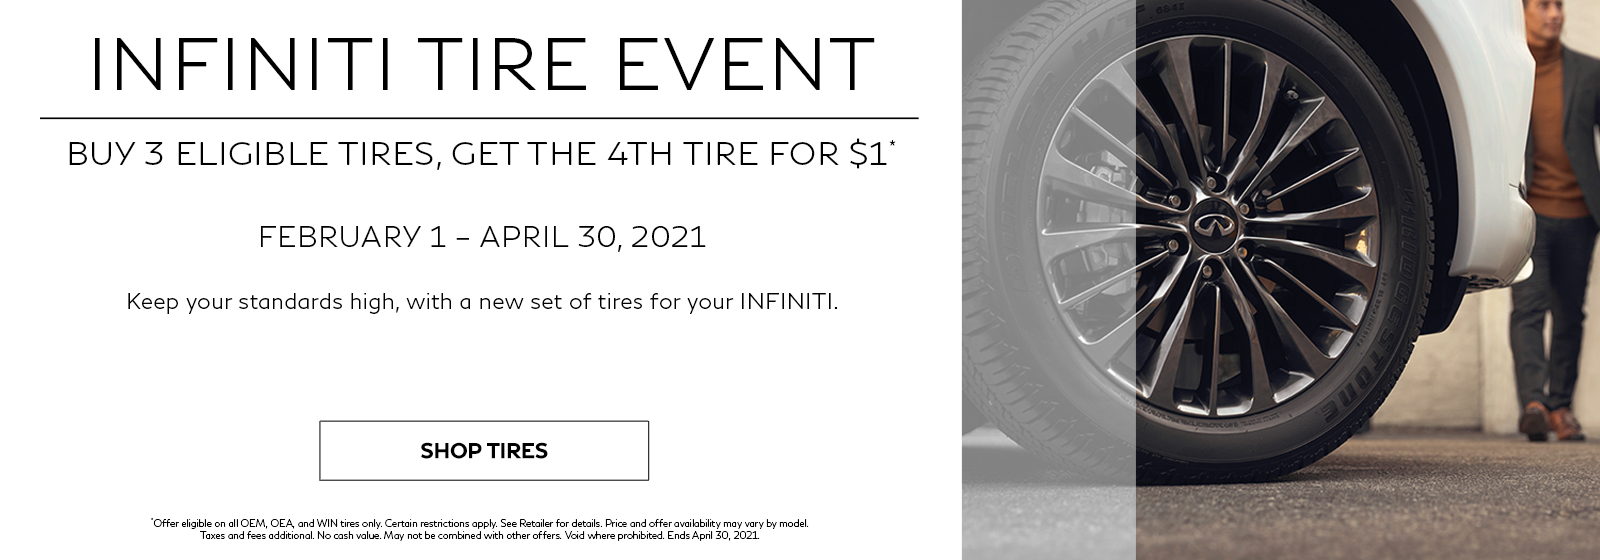 Buy 3 Eligible Tires, Get the 4th Tire for $1